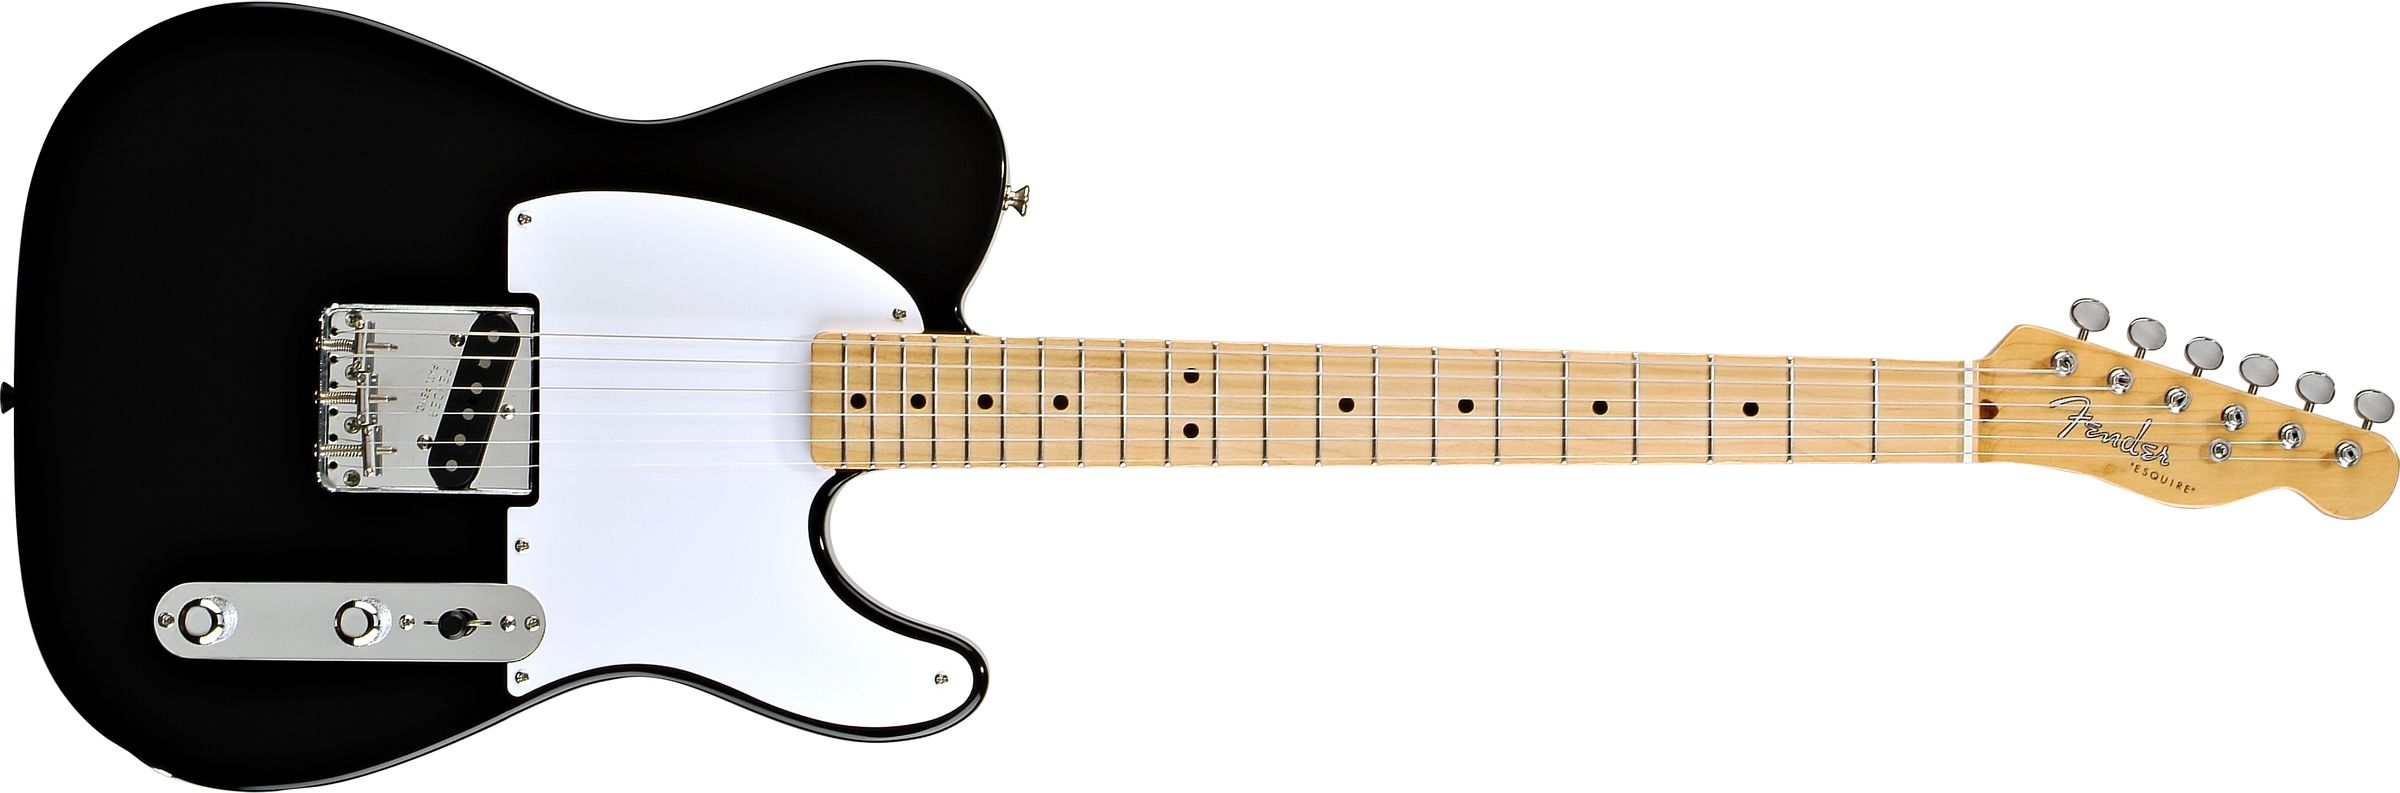 GUITARRA FENDER 013 1502 - 50 ESQUIRE - 306 - BLACK